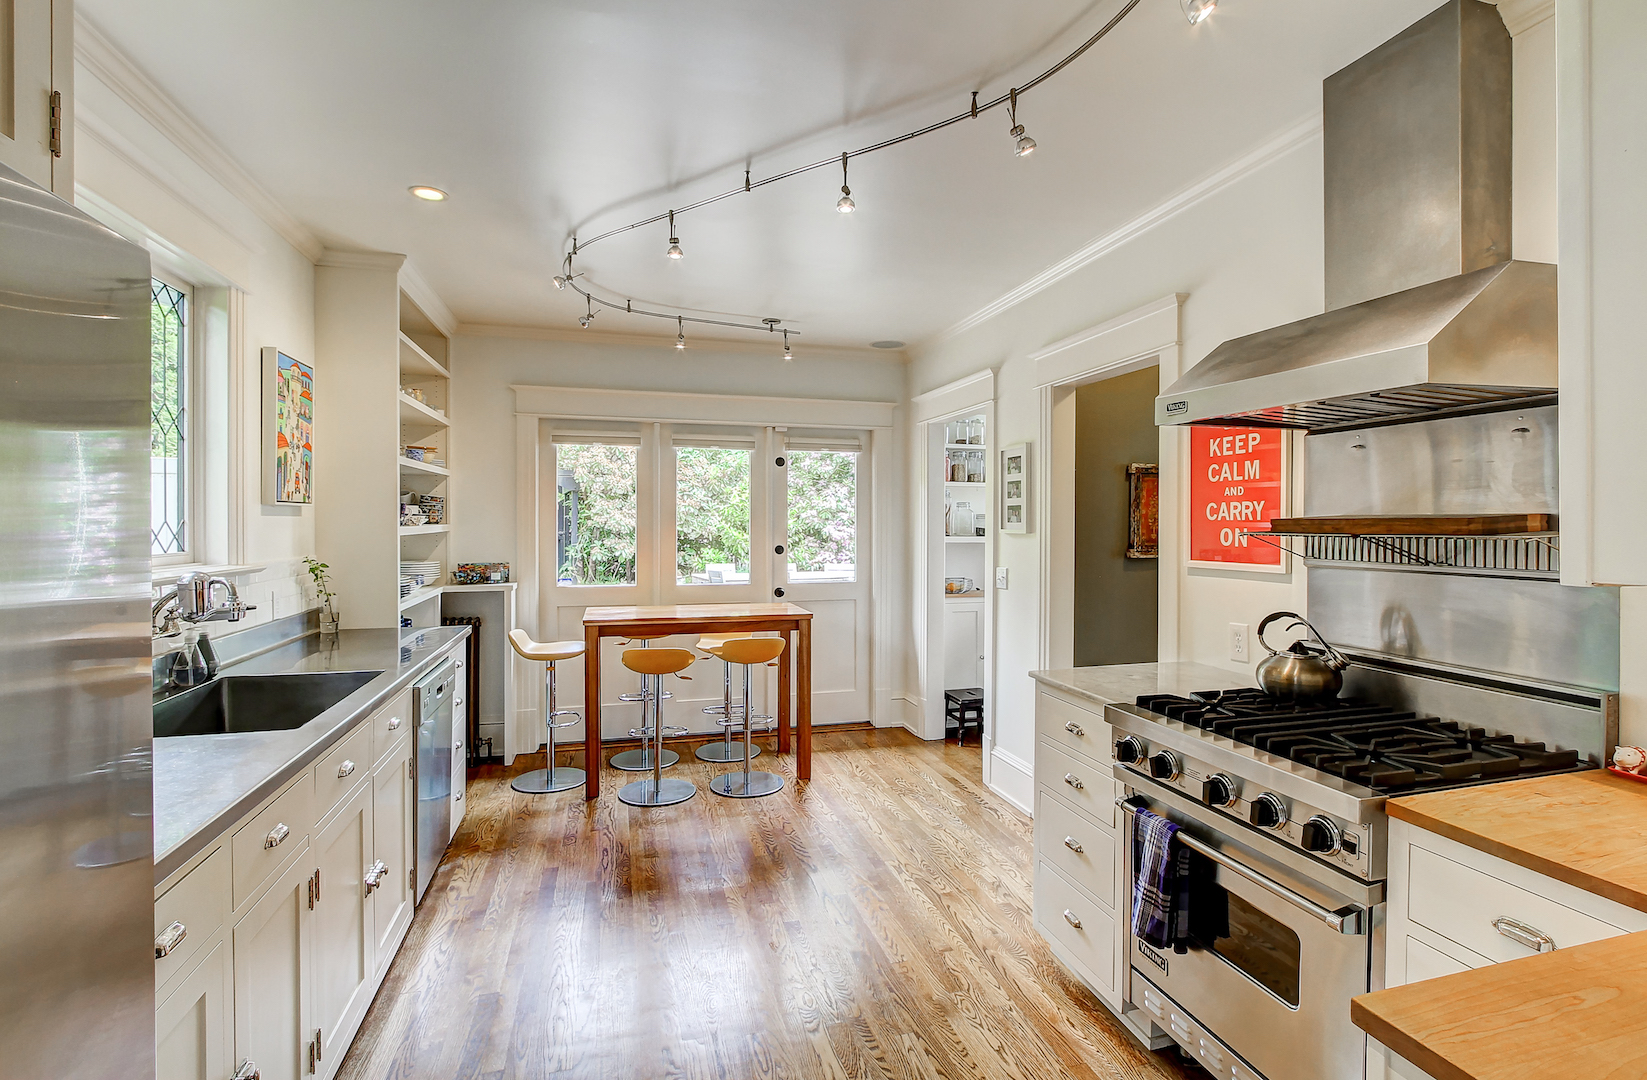 Sunny lake washington mansion listed for 3m curbed seattle for Floors and kitchens st john